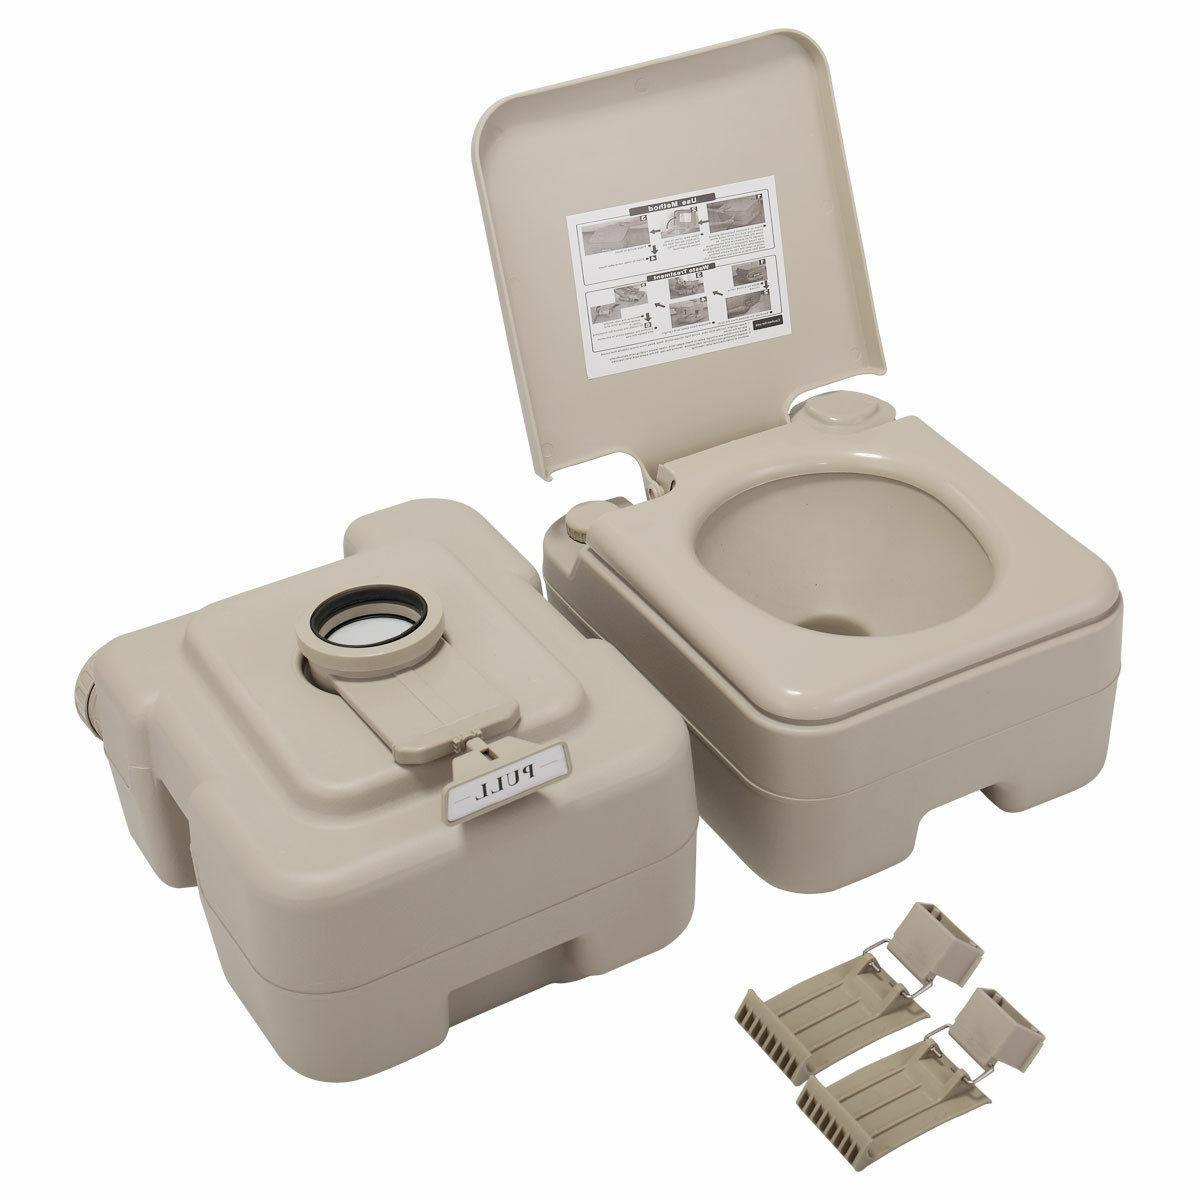 Portable Toilet 20L Gallon Commode Potty Outdoor/Indoor